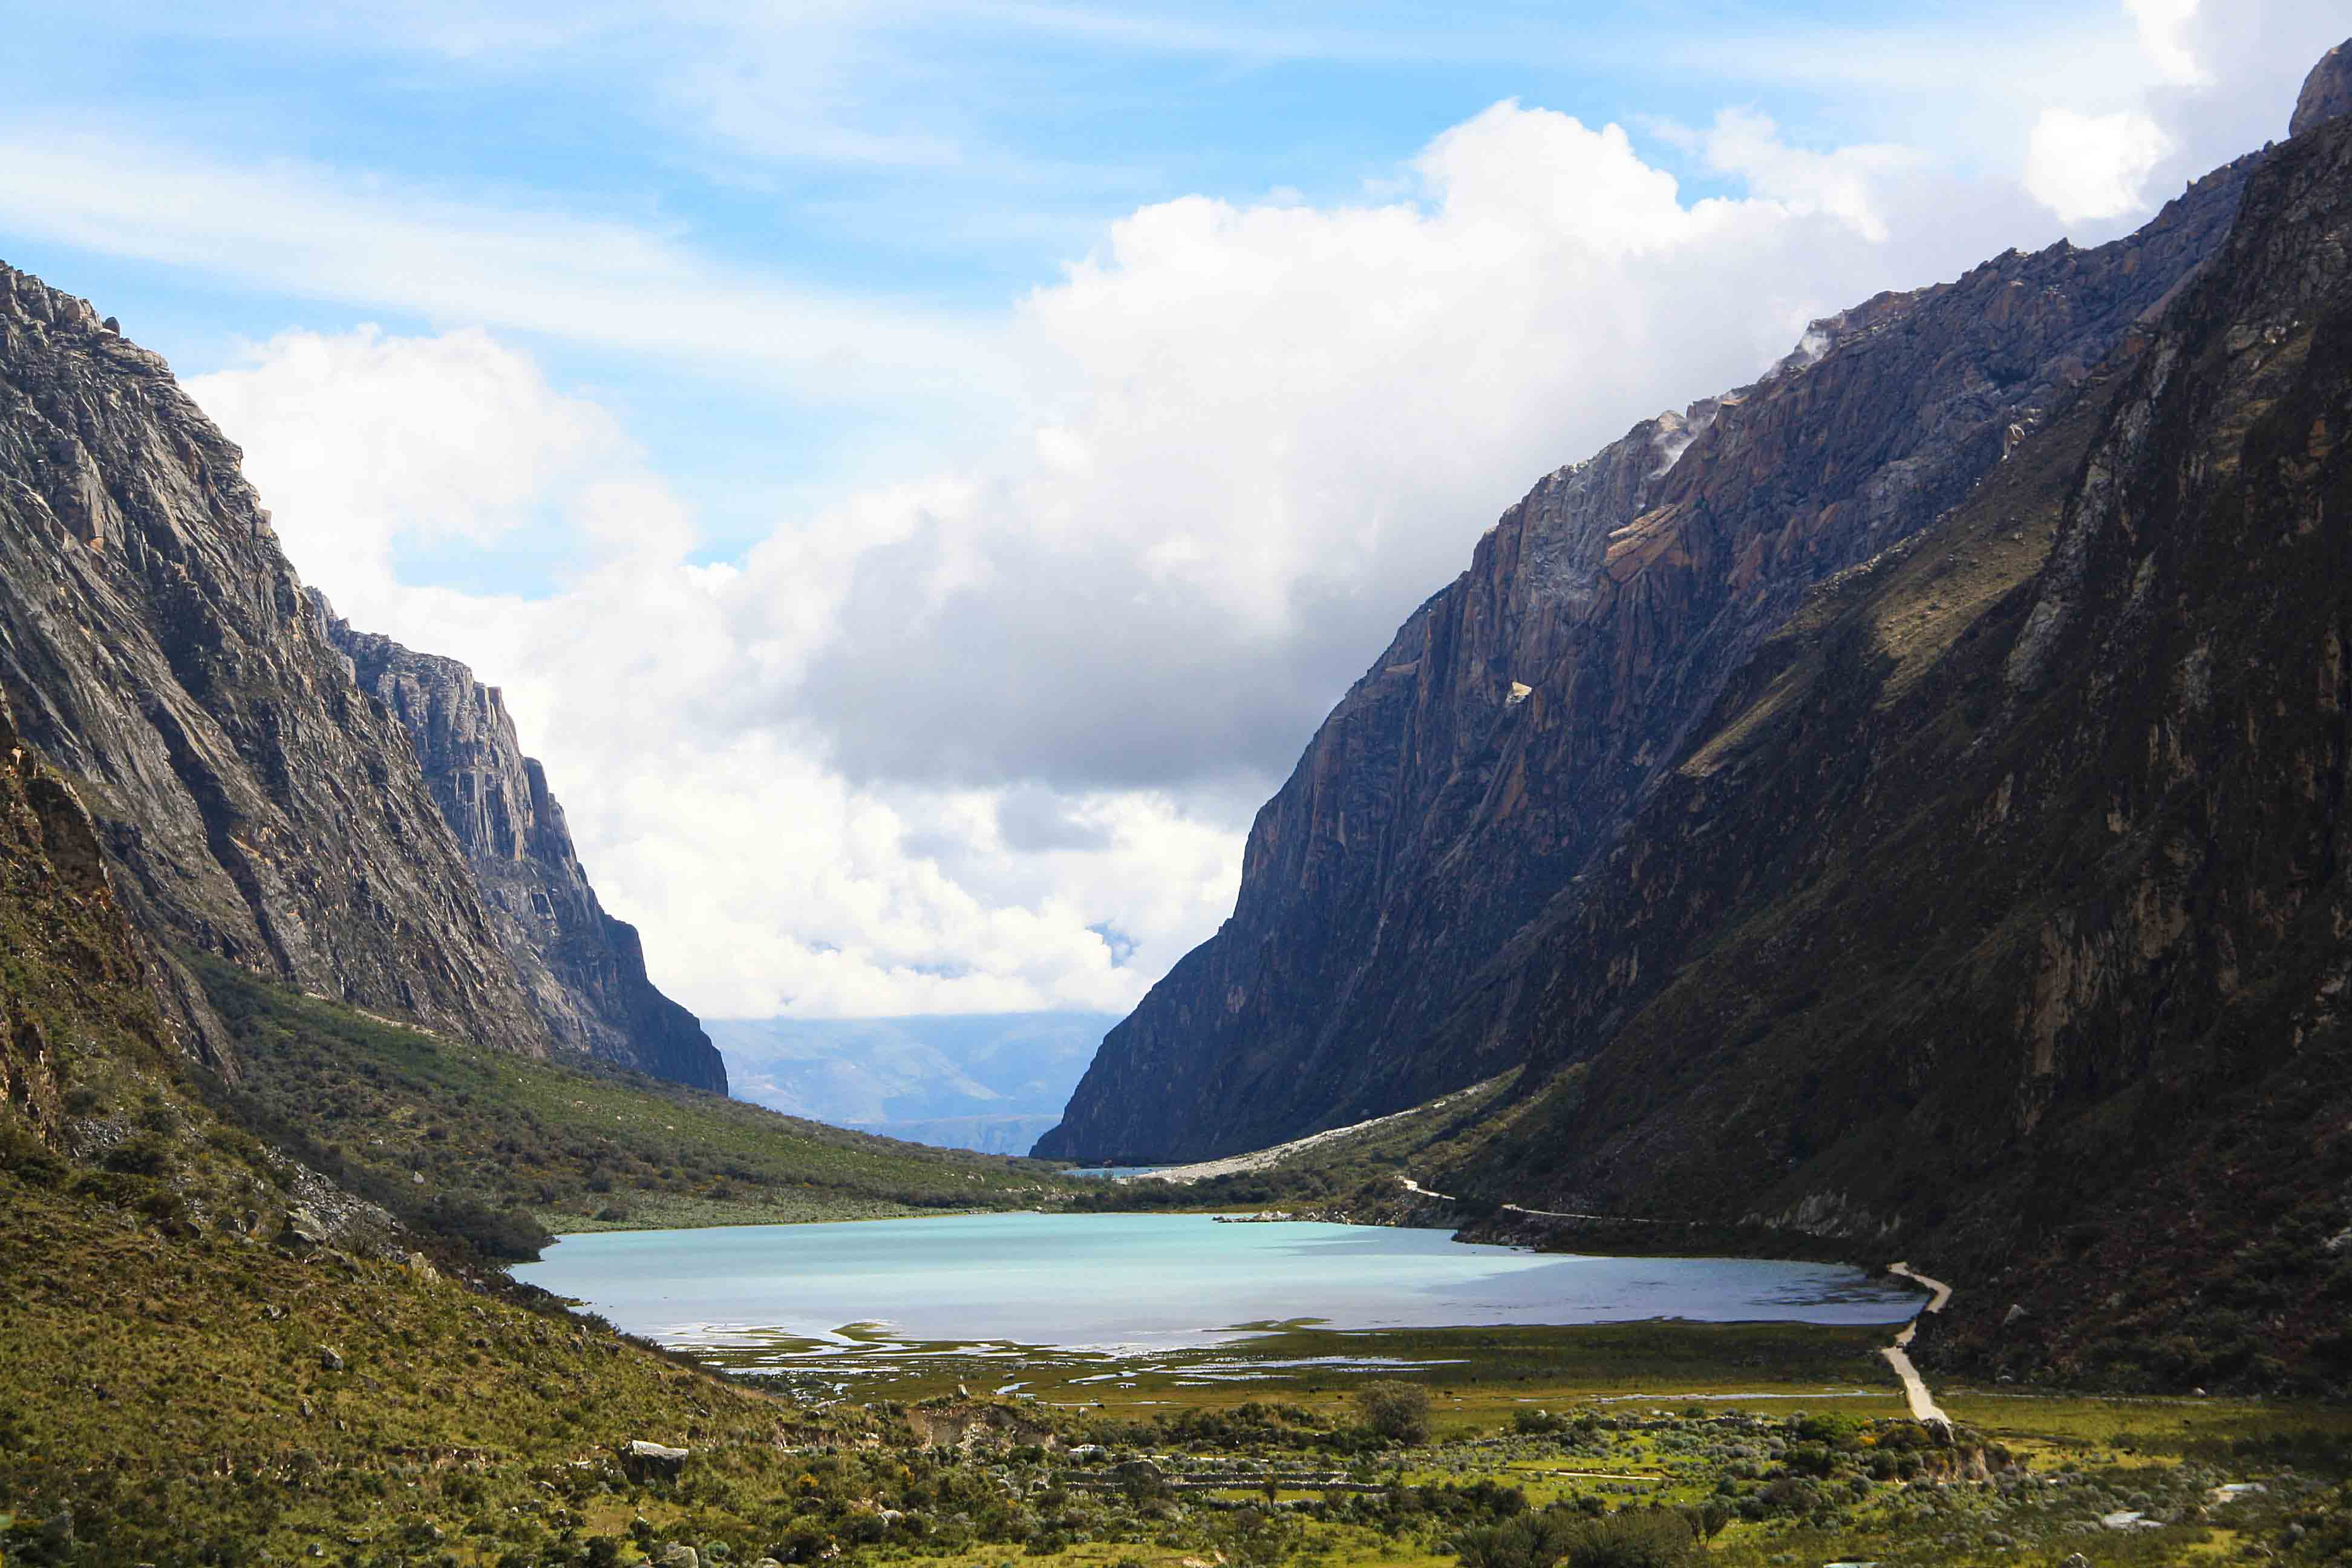 lake and mountains of the cordillera blanca